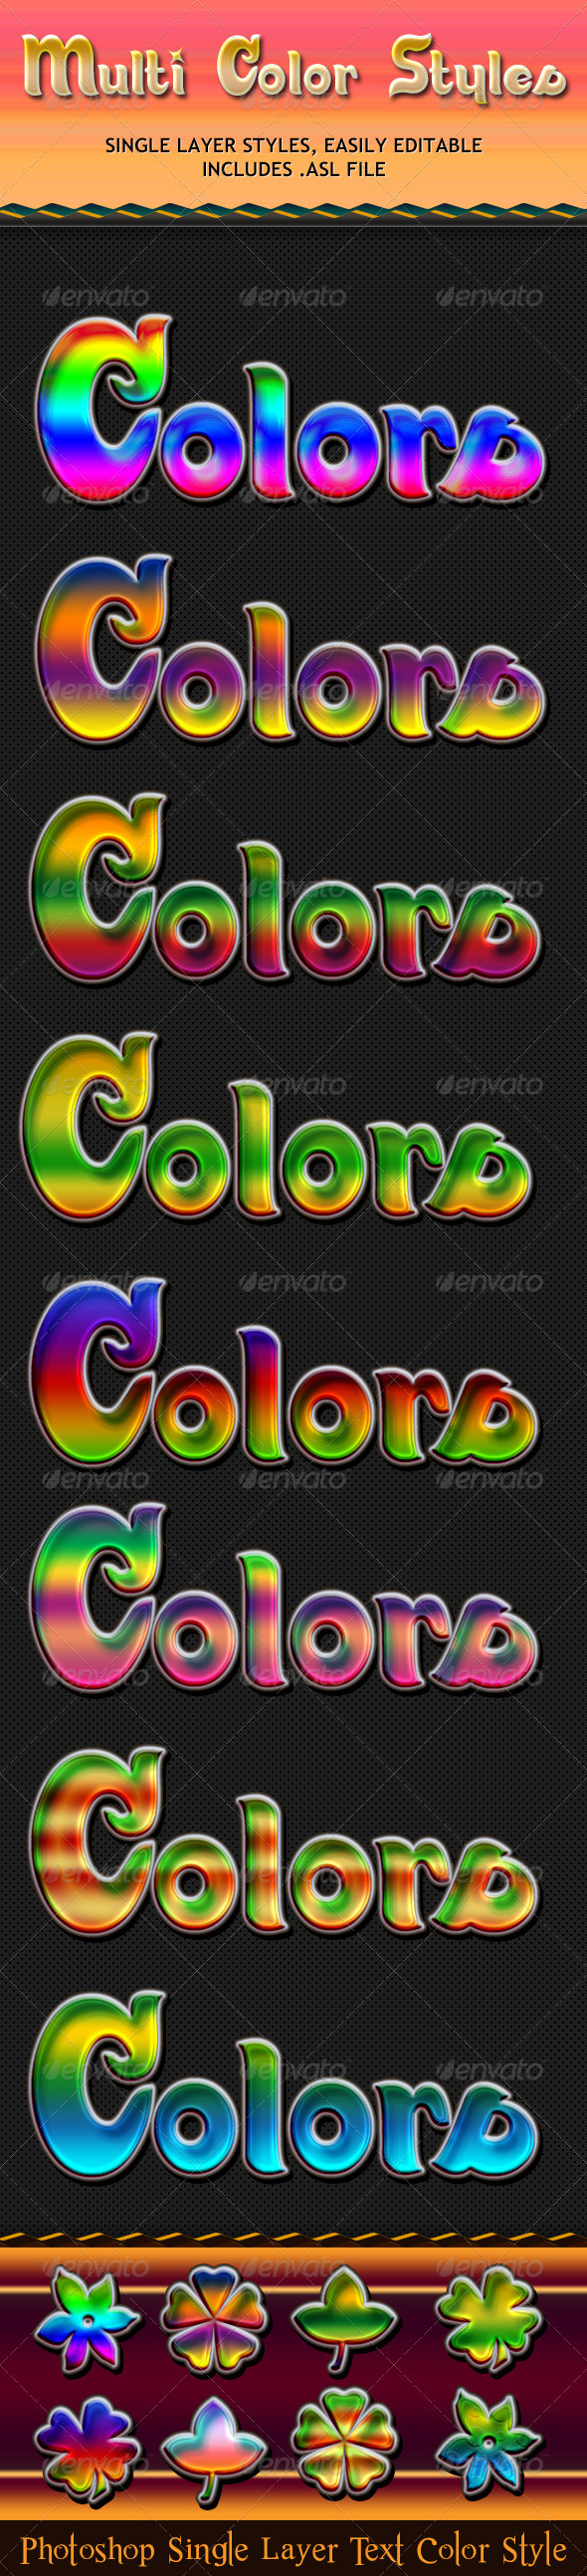 Multi Color Styles - Text Effects Styles